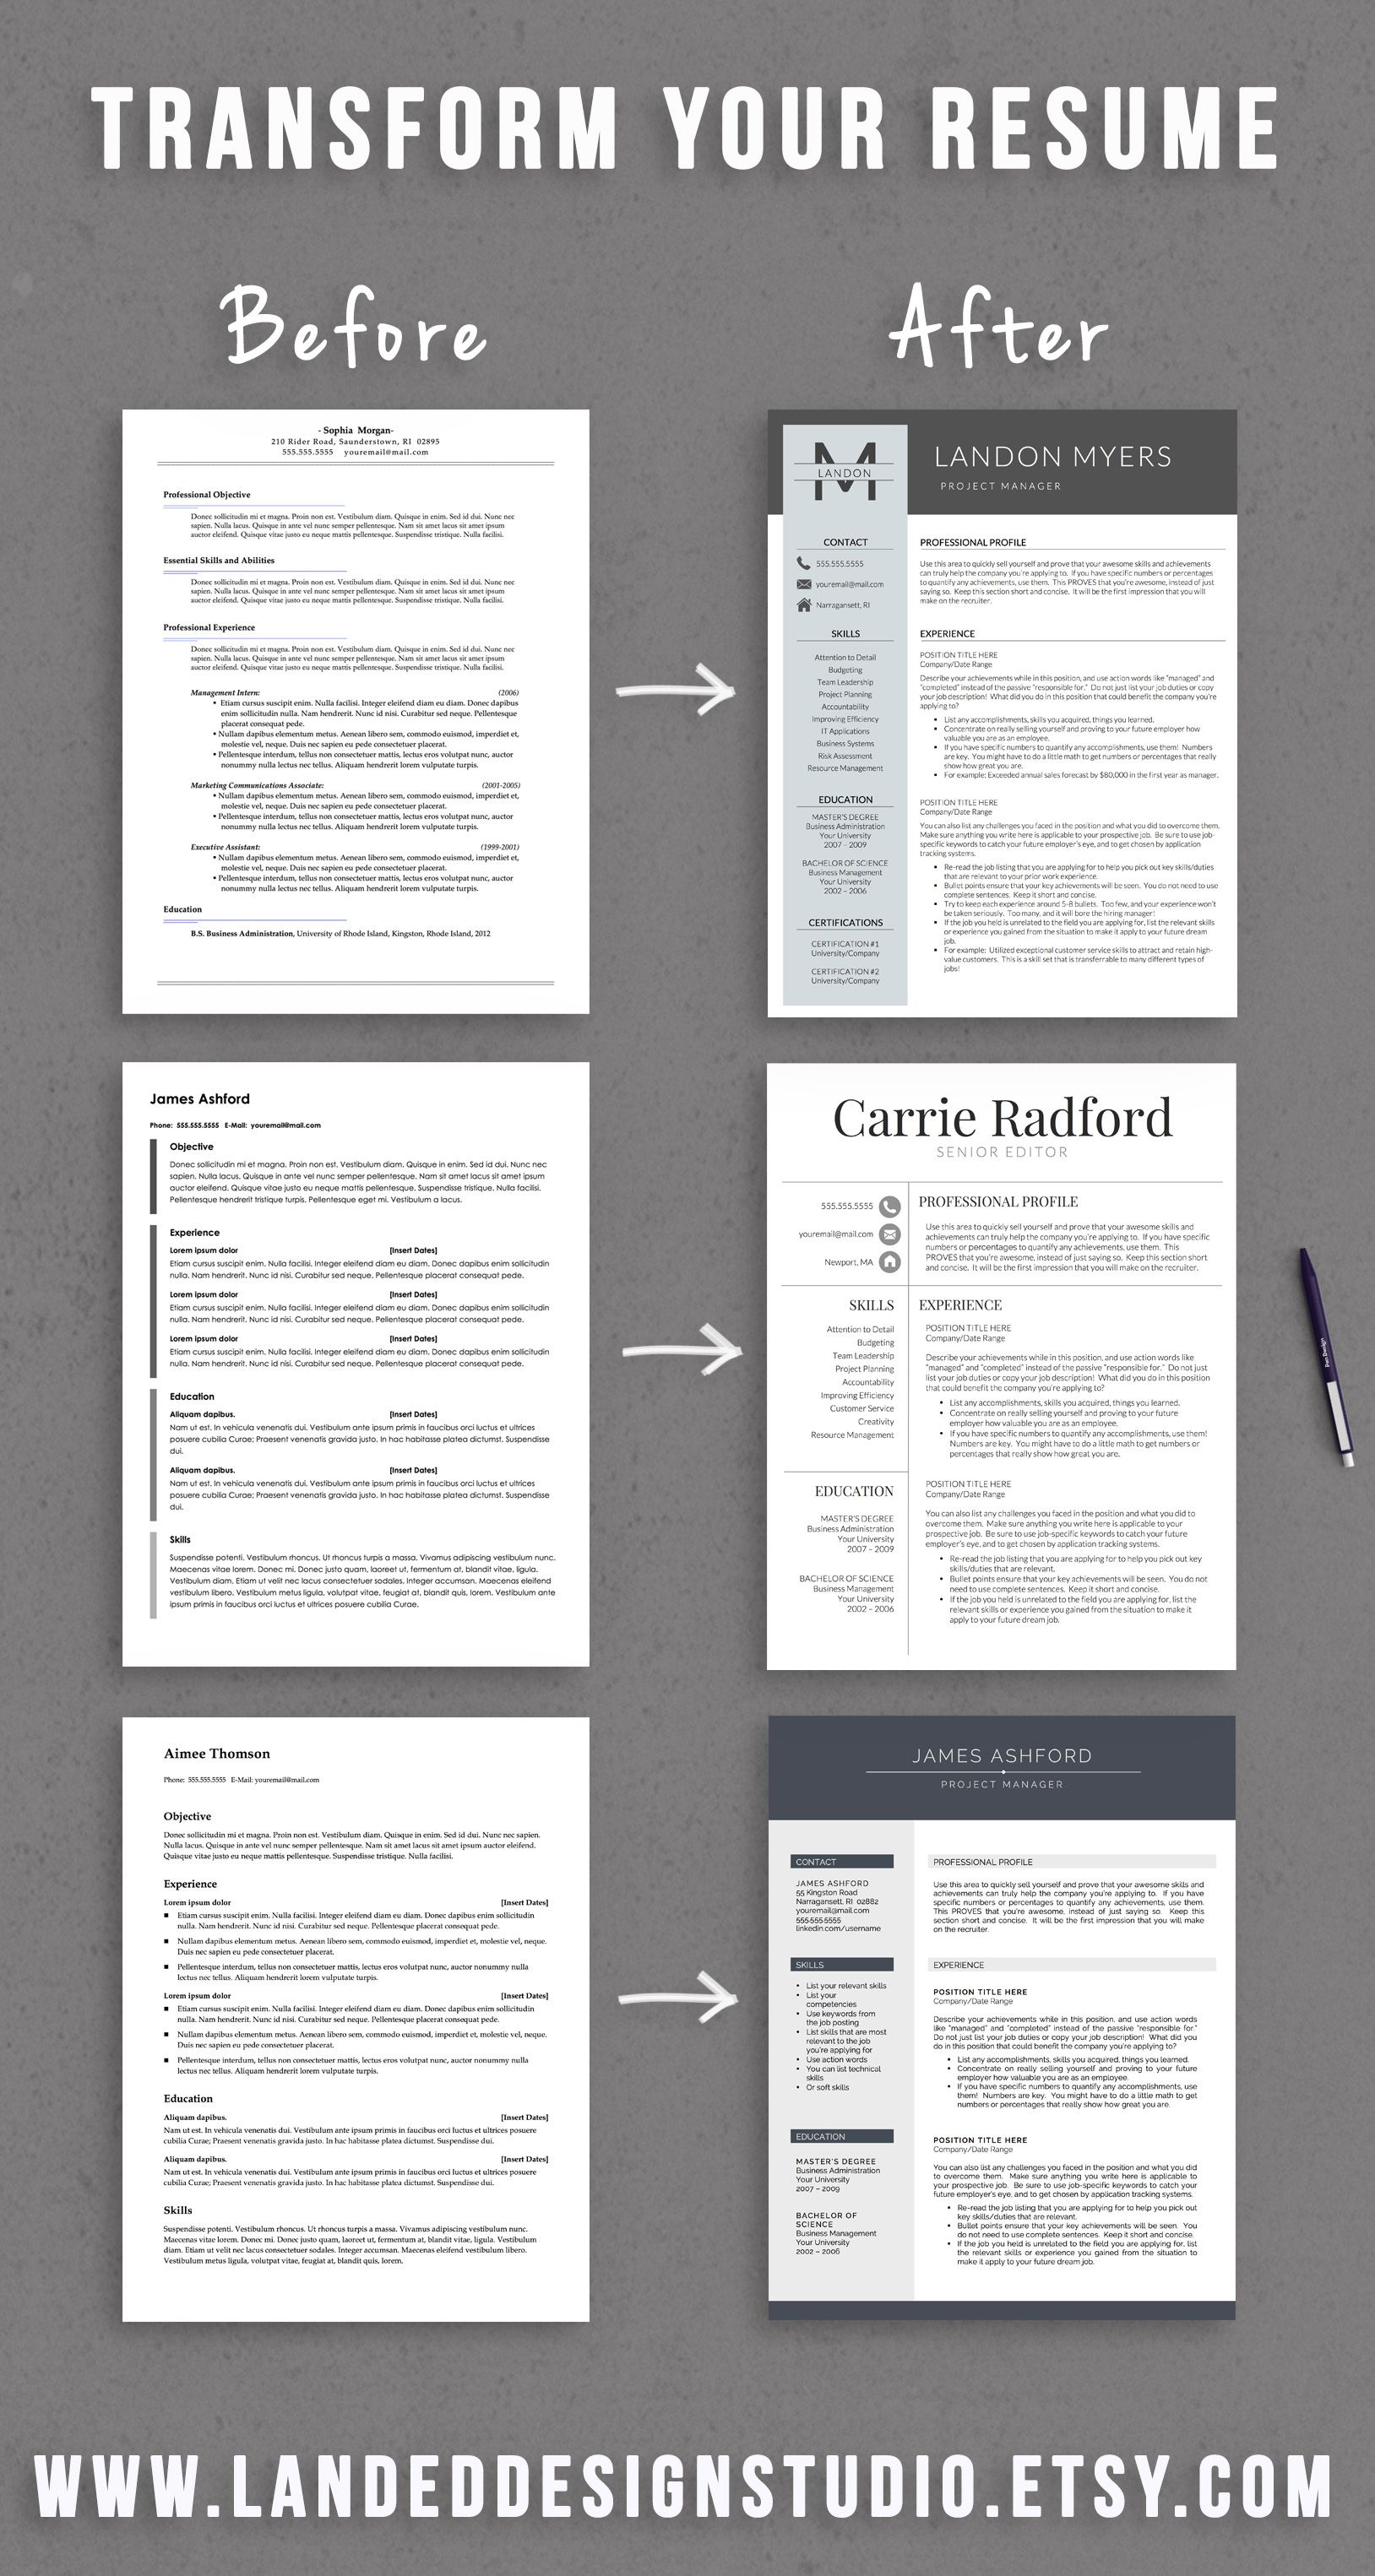 Completely Transform Your Resume For 15 With A Professionally Designed Resume Template Resume Tips Job Interview Tips Job Info